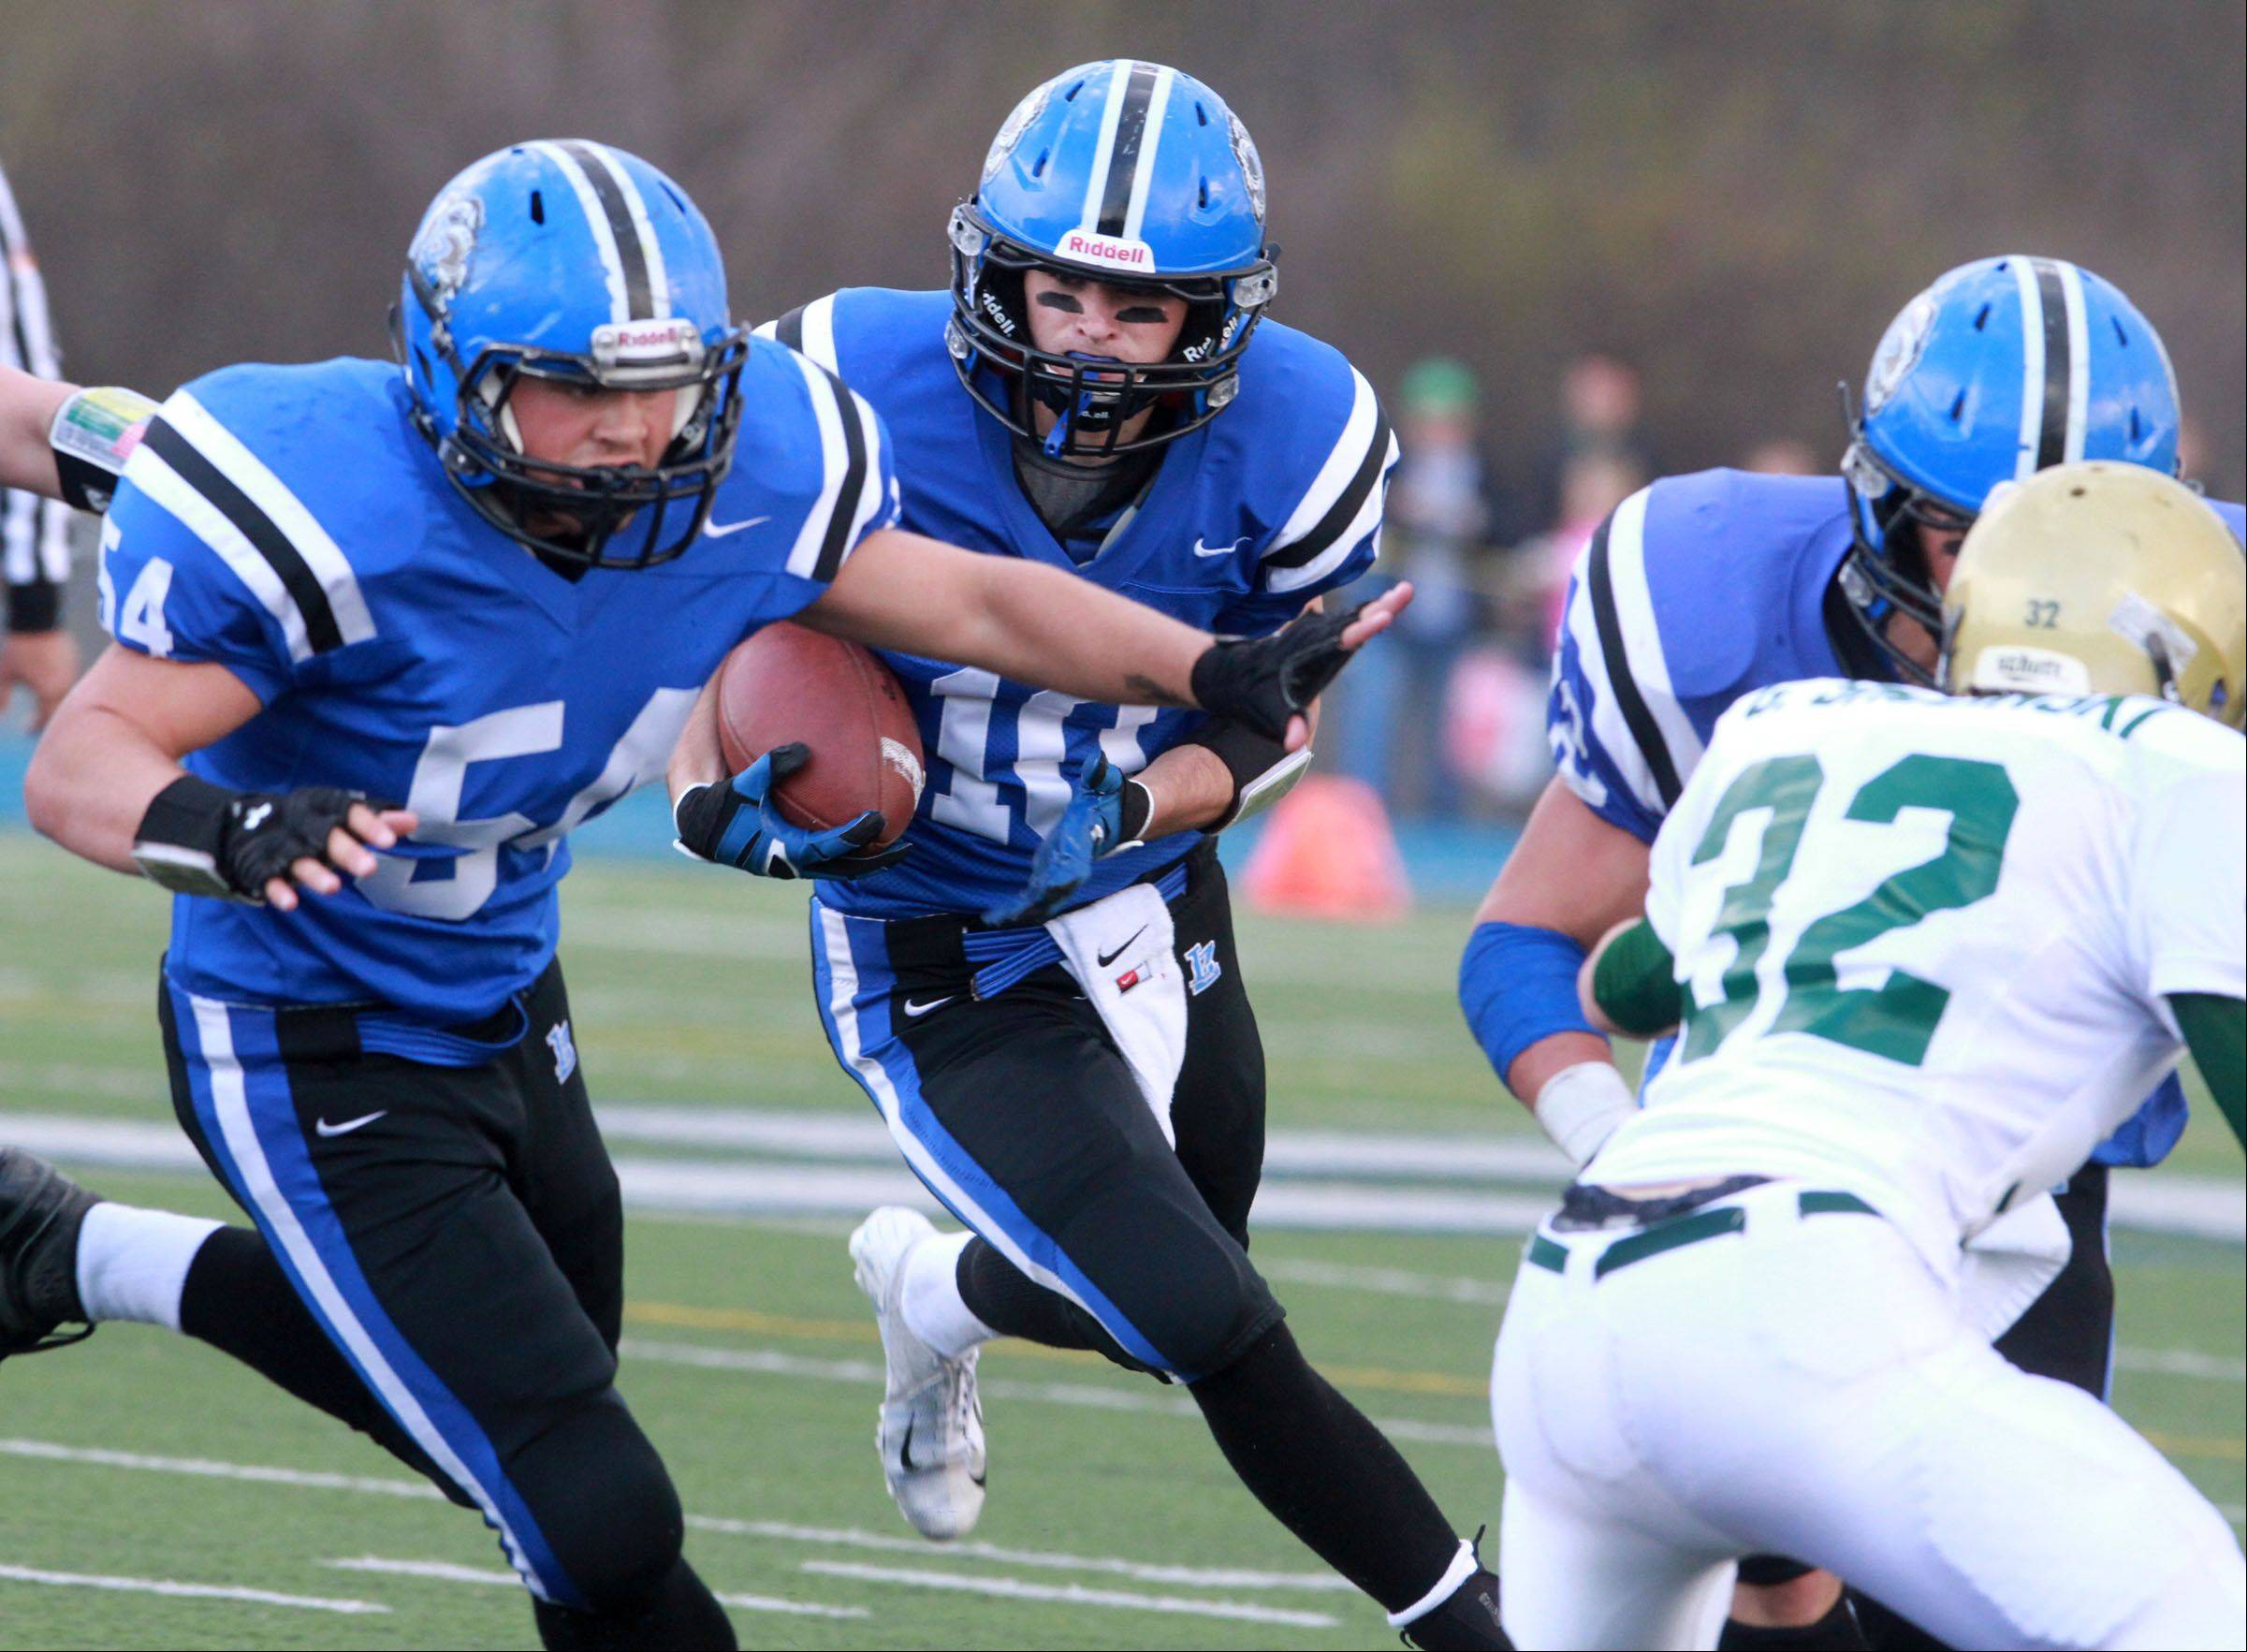 Lake Zurich's Jake Stauner get blocking from lineman Aaron Hussey as he runs the ball against Rockford Boylan in Class 7A state quarterfinal at Lake Zurich on Saturday.